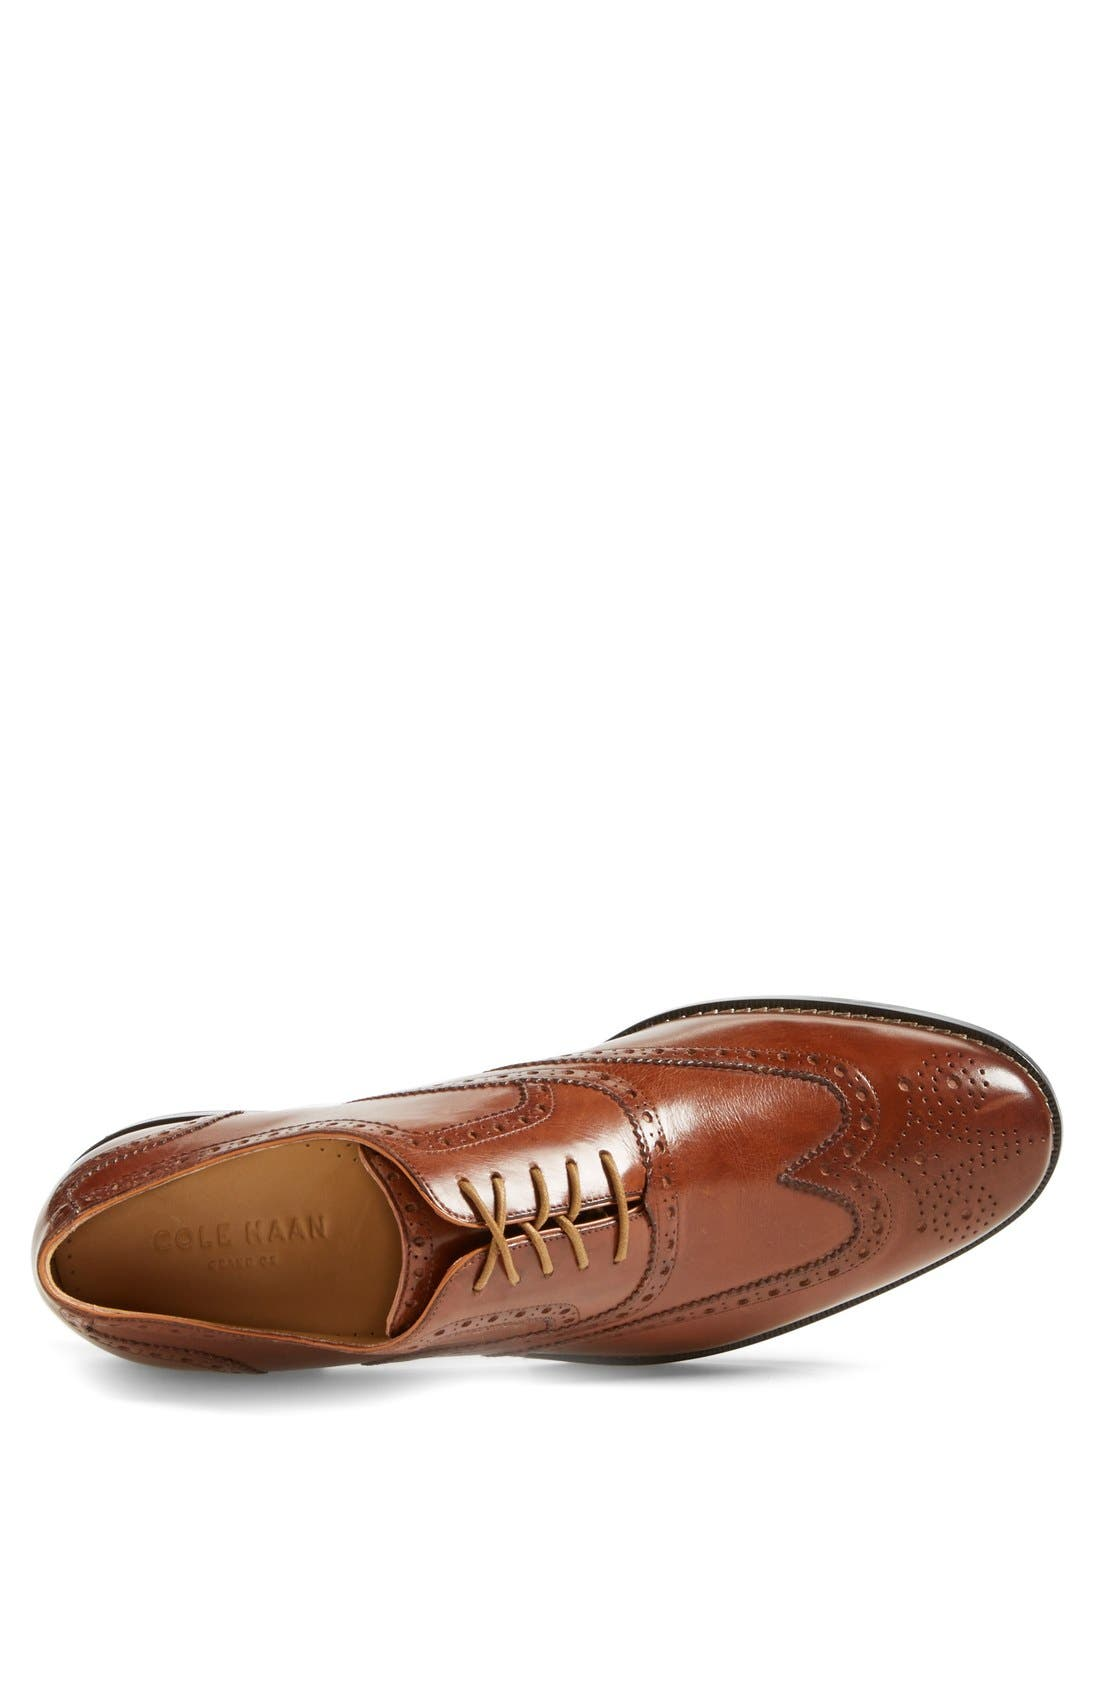 'Cambridge' Wingtip,                             Alternate thumbnail 3, color,                             British Tan Leather